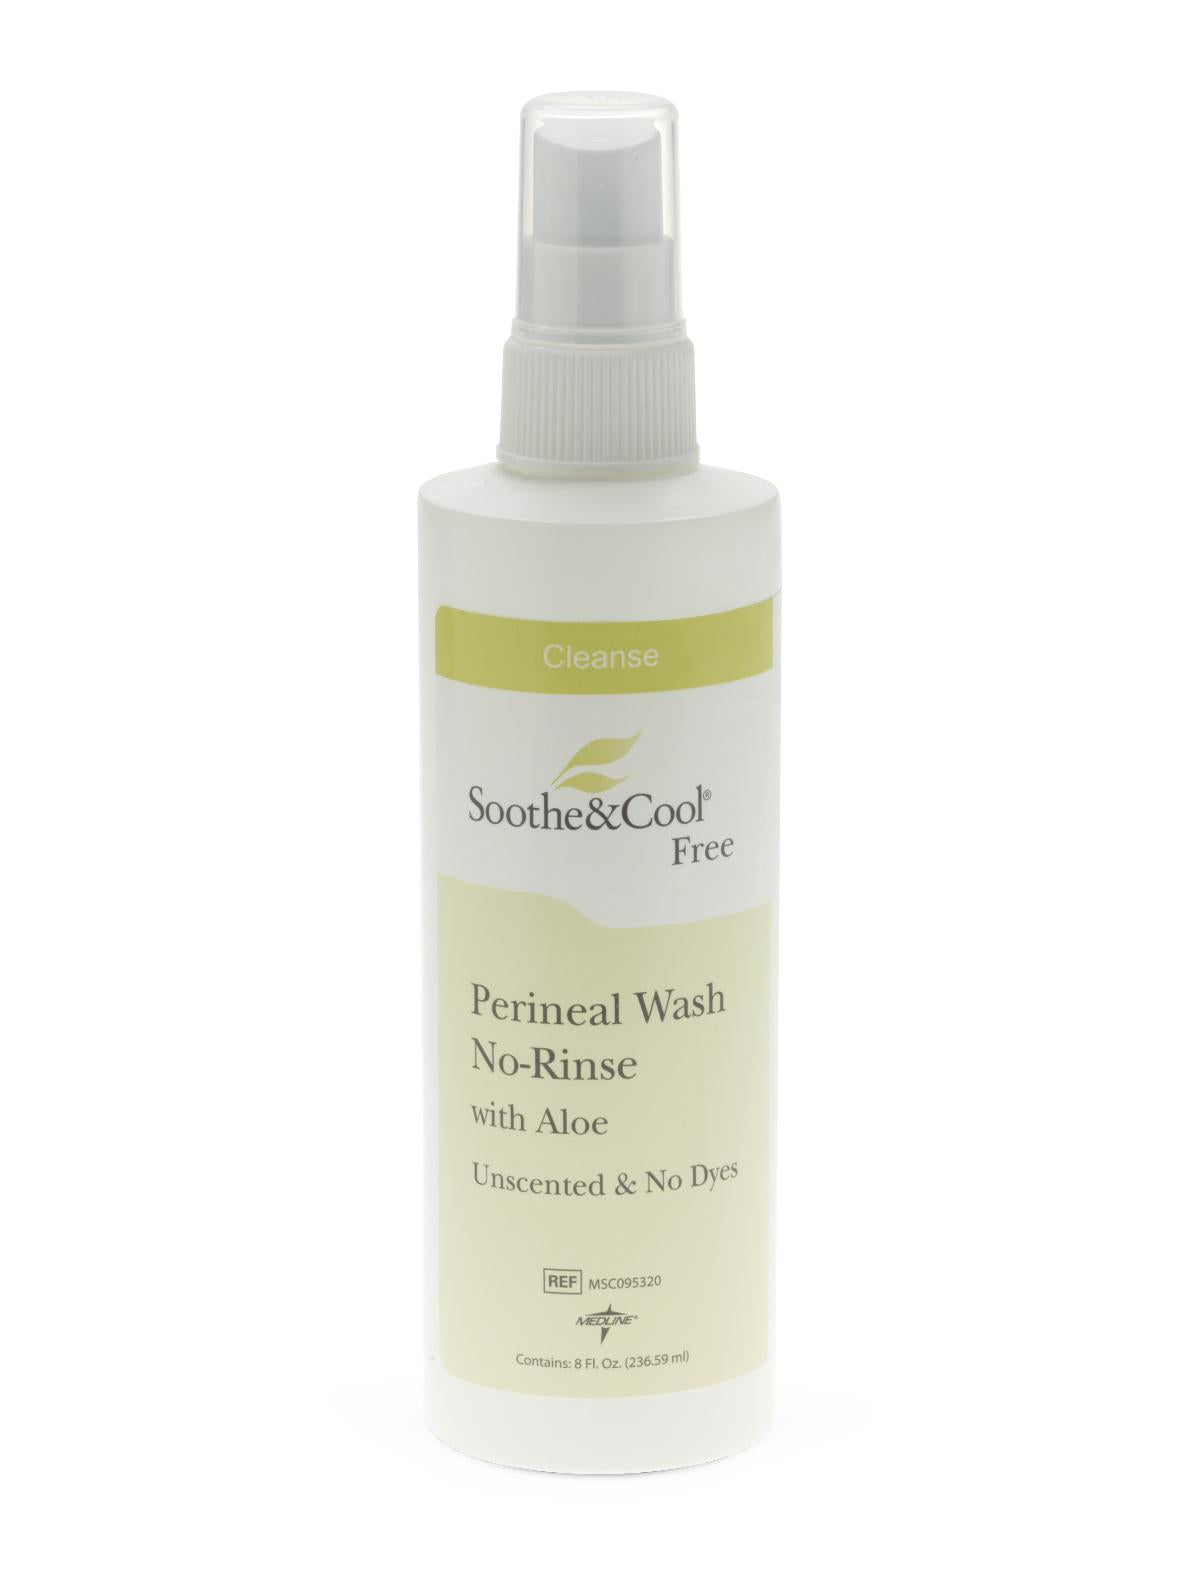 Soothe & Cool No Rinse Perineal Spray Wash - 8 oz.